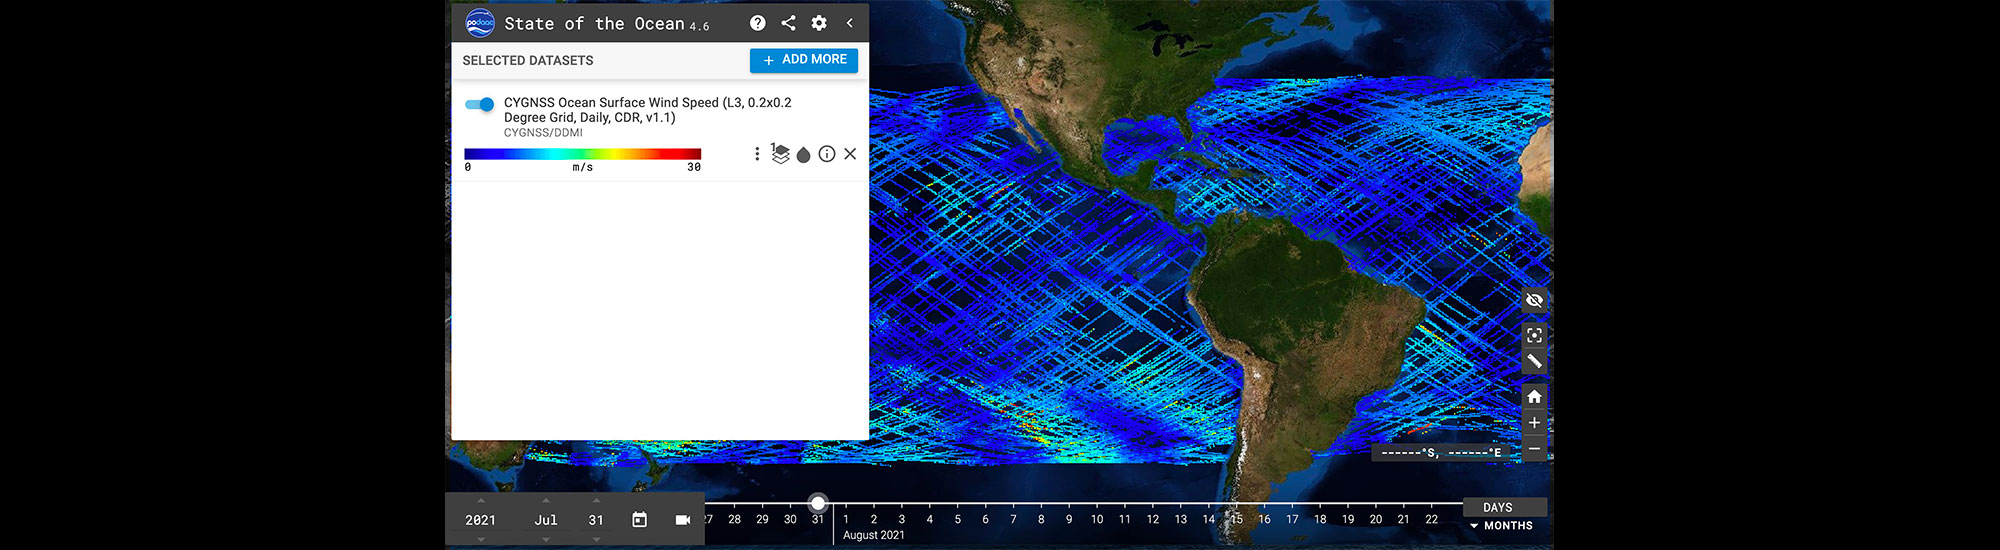 This graphic illustrates information gathered from the PO.DAAC State of the Ocean (SOTO) visualization tool.